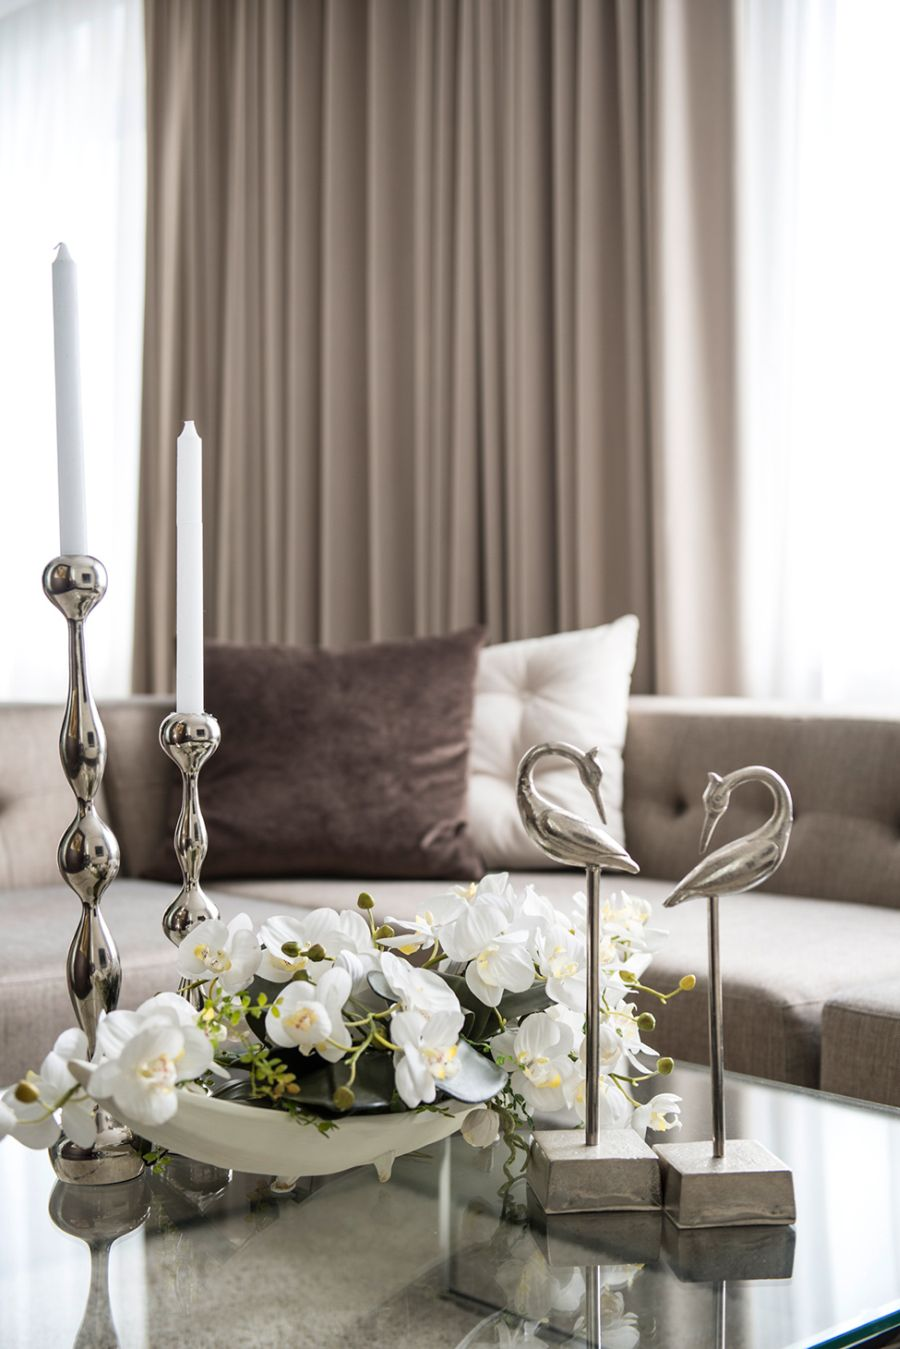 Hint of glossy metal on the coffee table